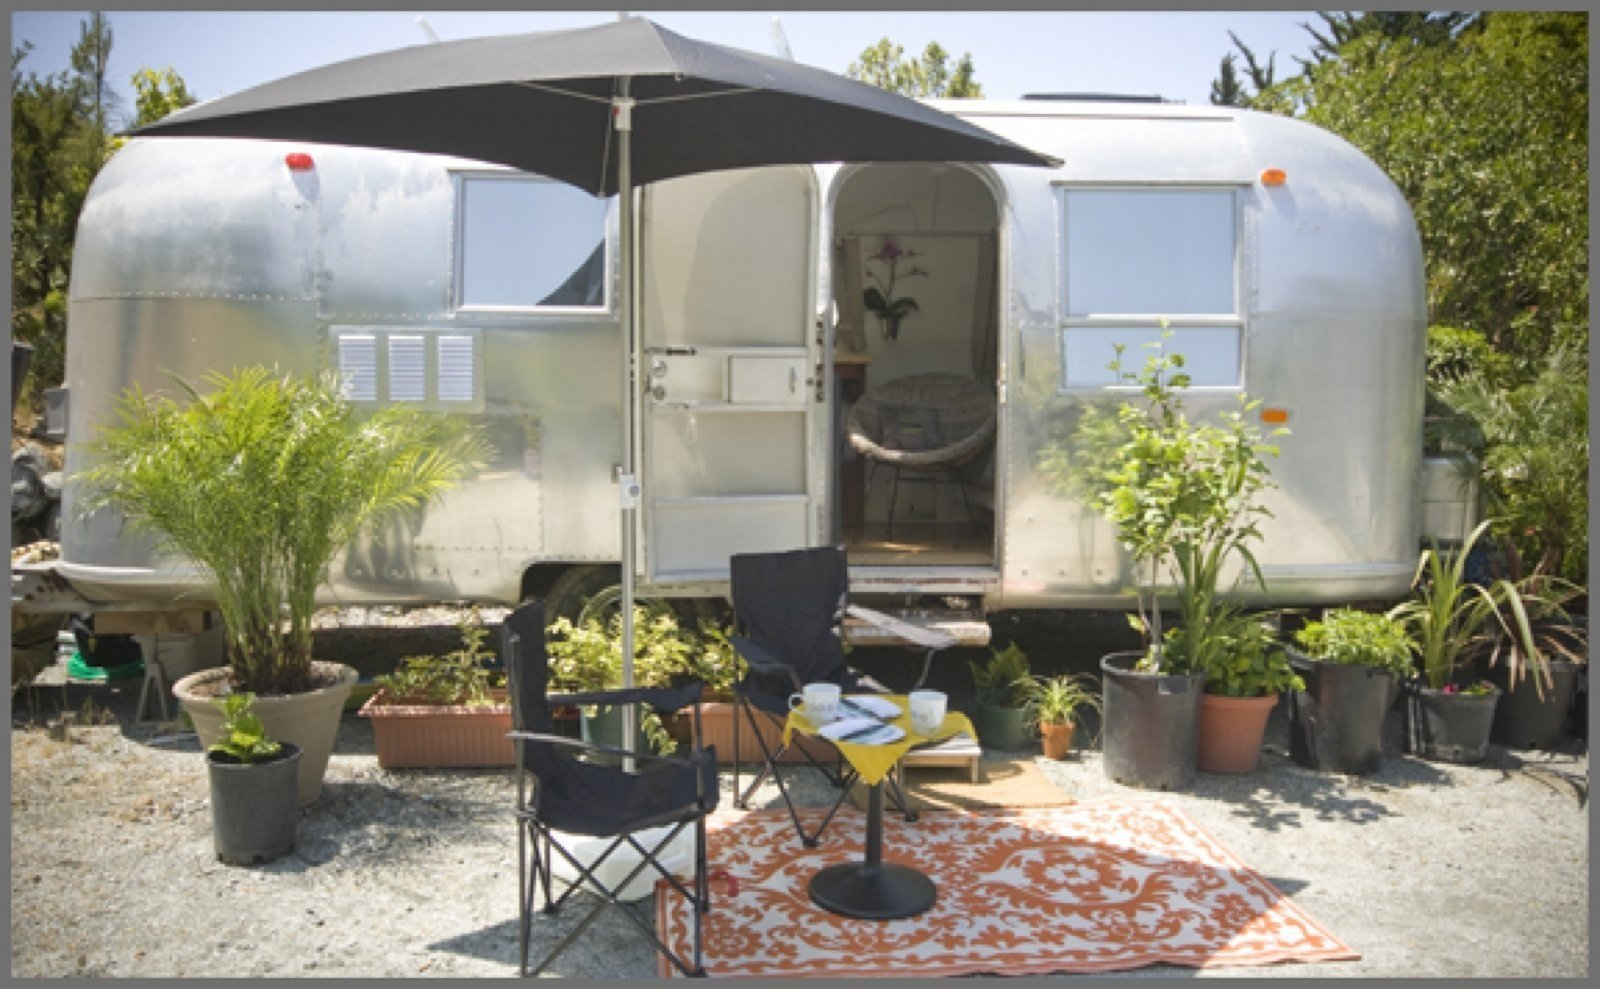 Exterior and Airstream Building Type  Photo 9 of 9 in 8 Ways to Renovate an Airstream